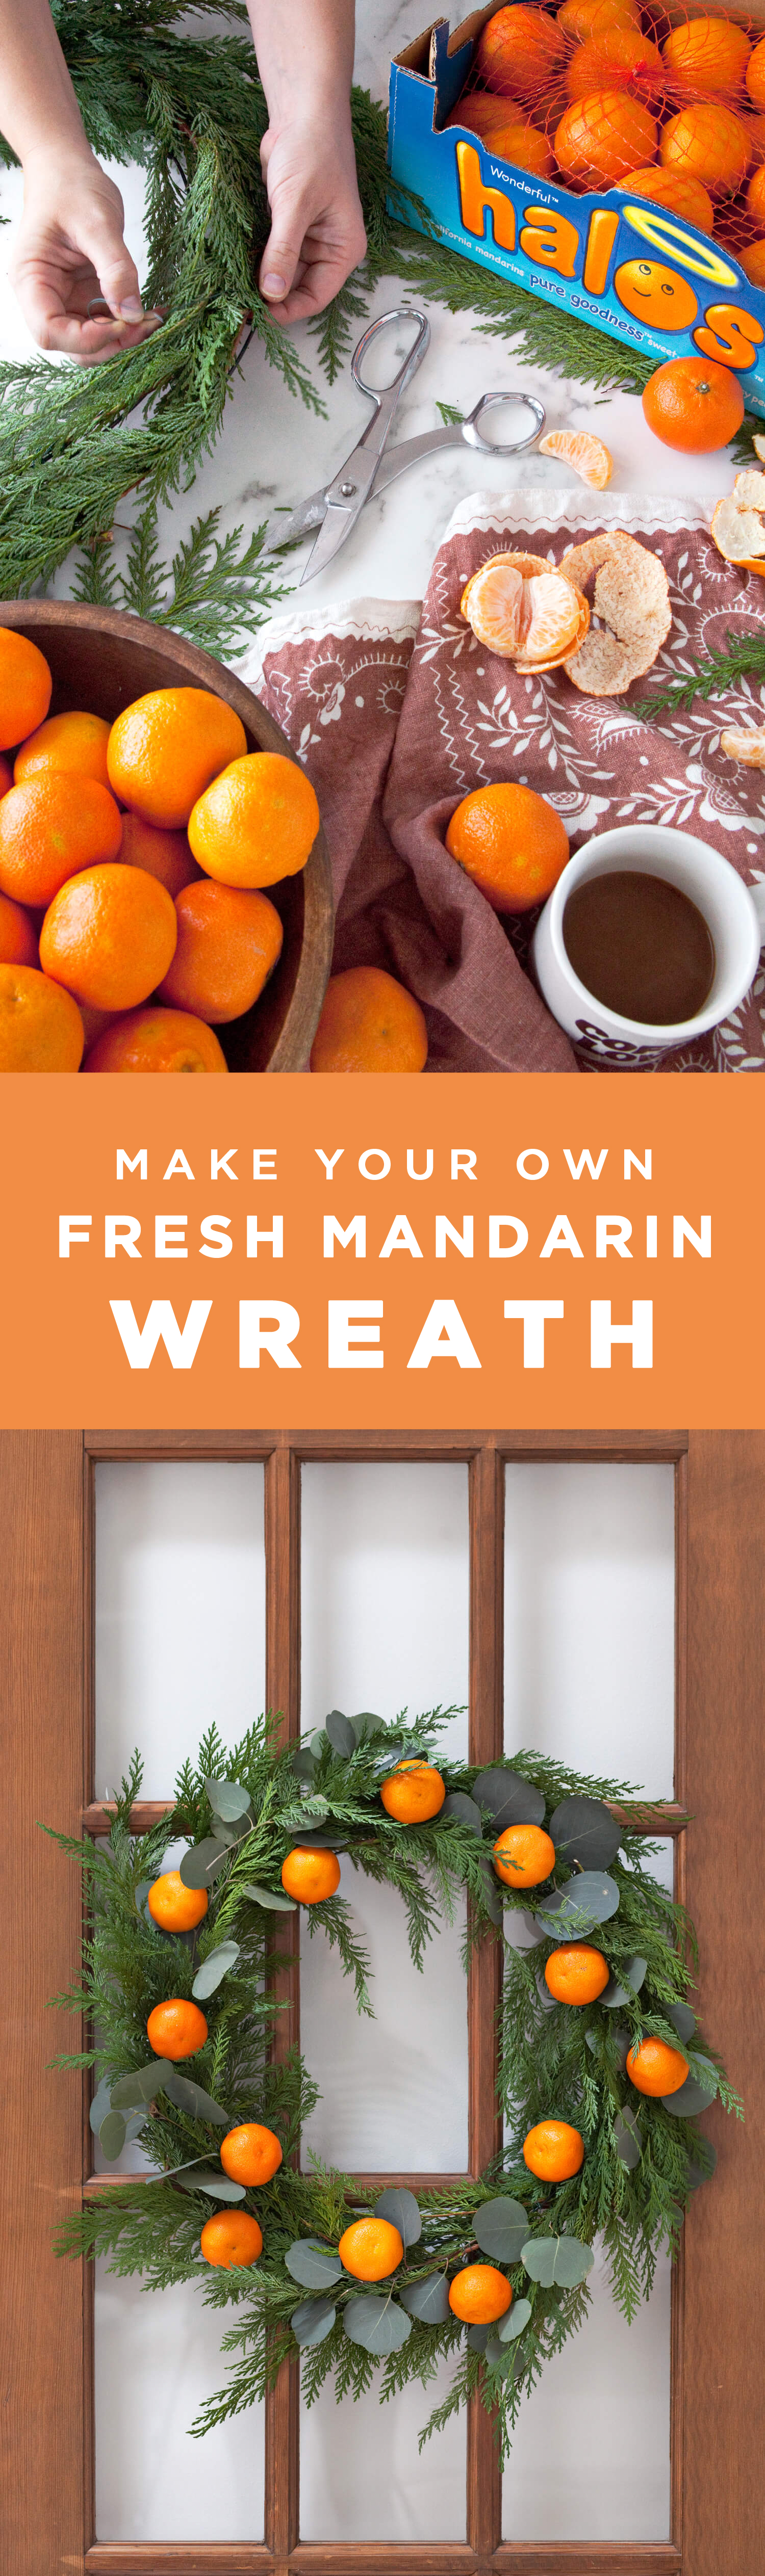 make your own fresh mandarin wreath